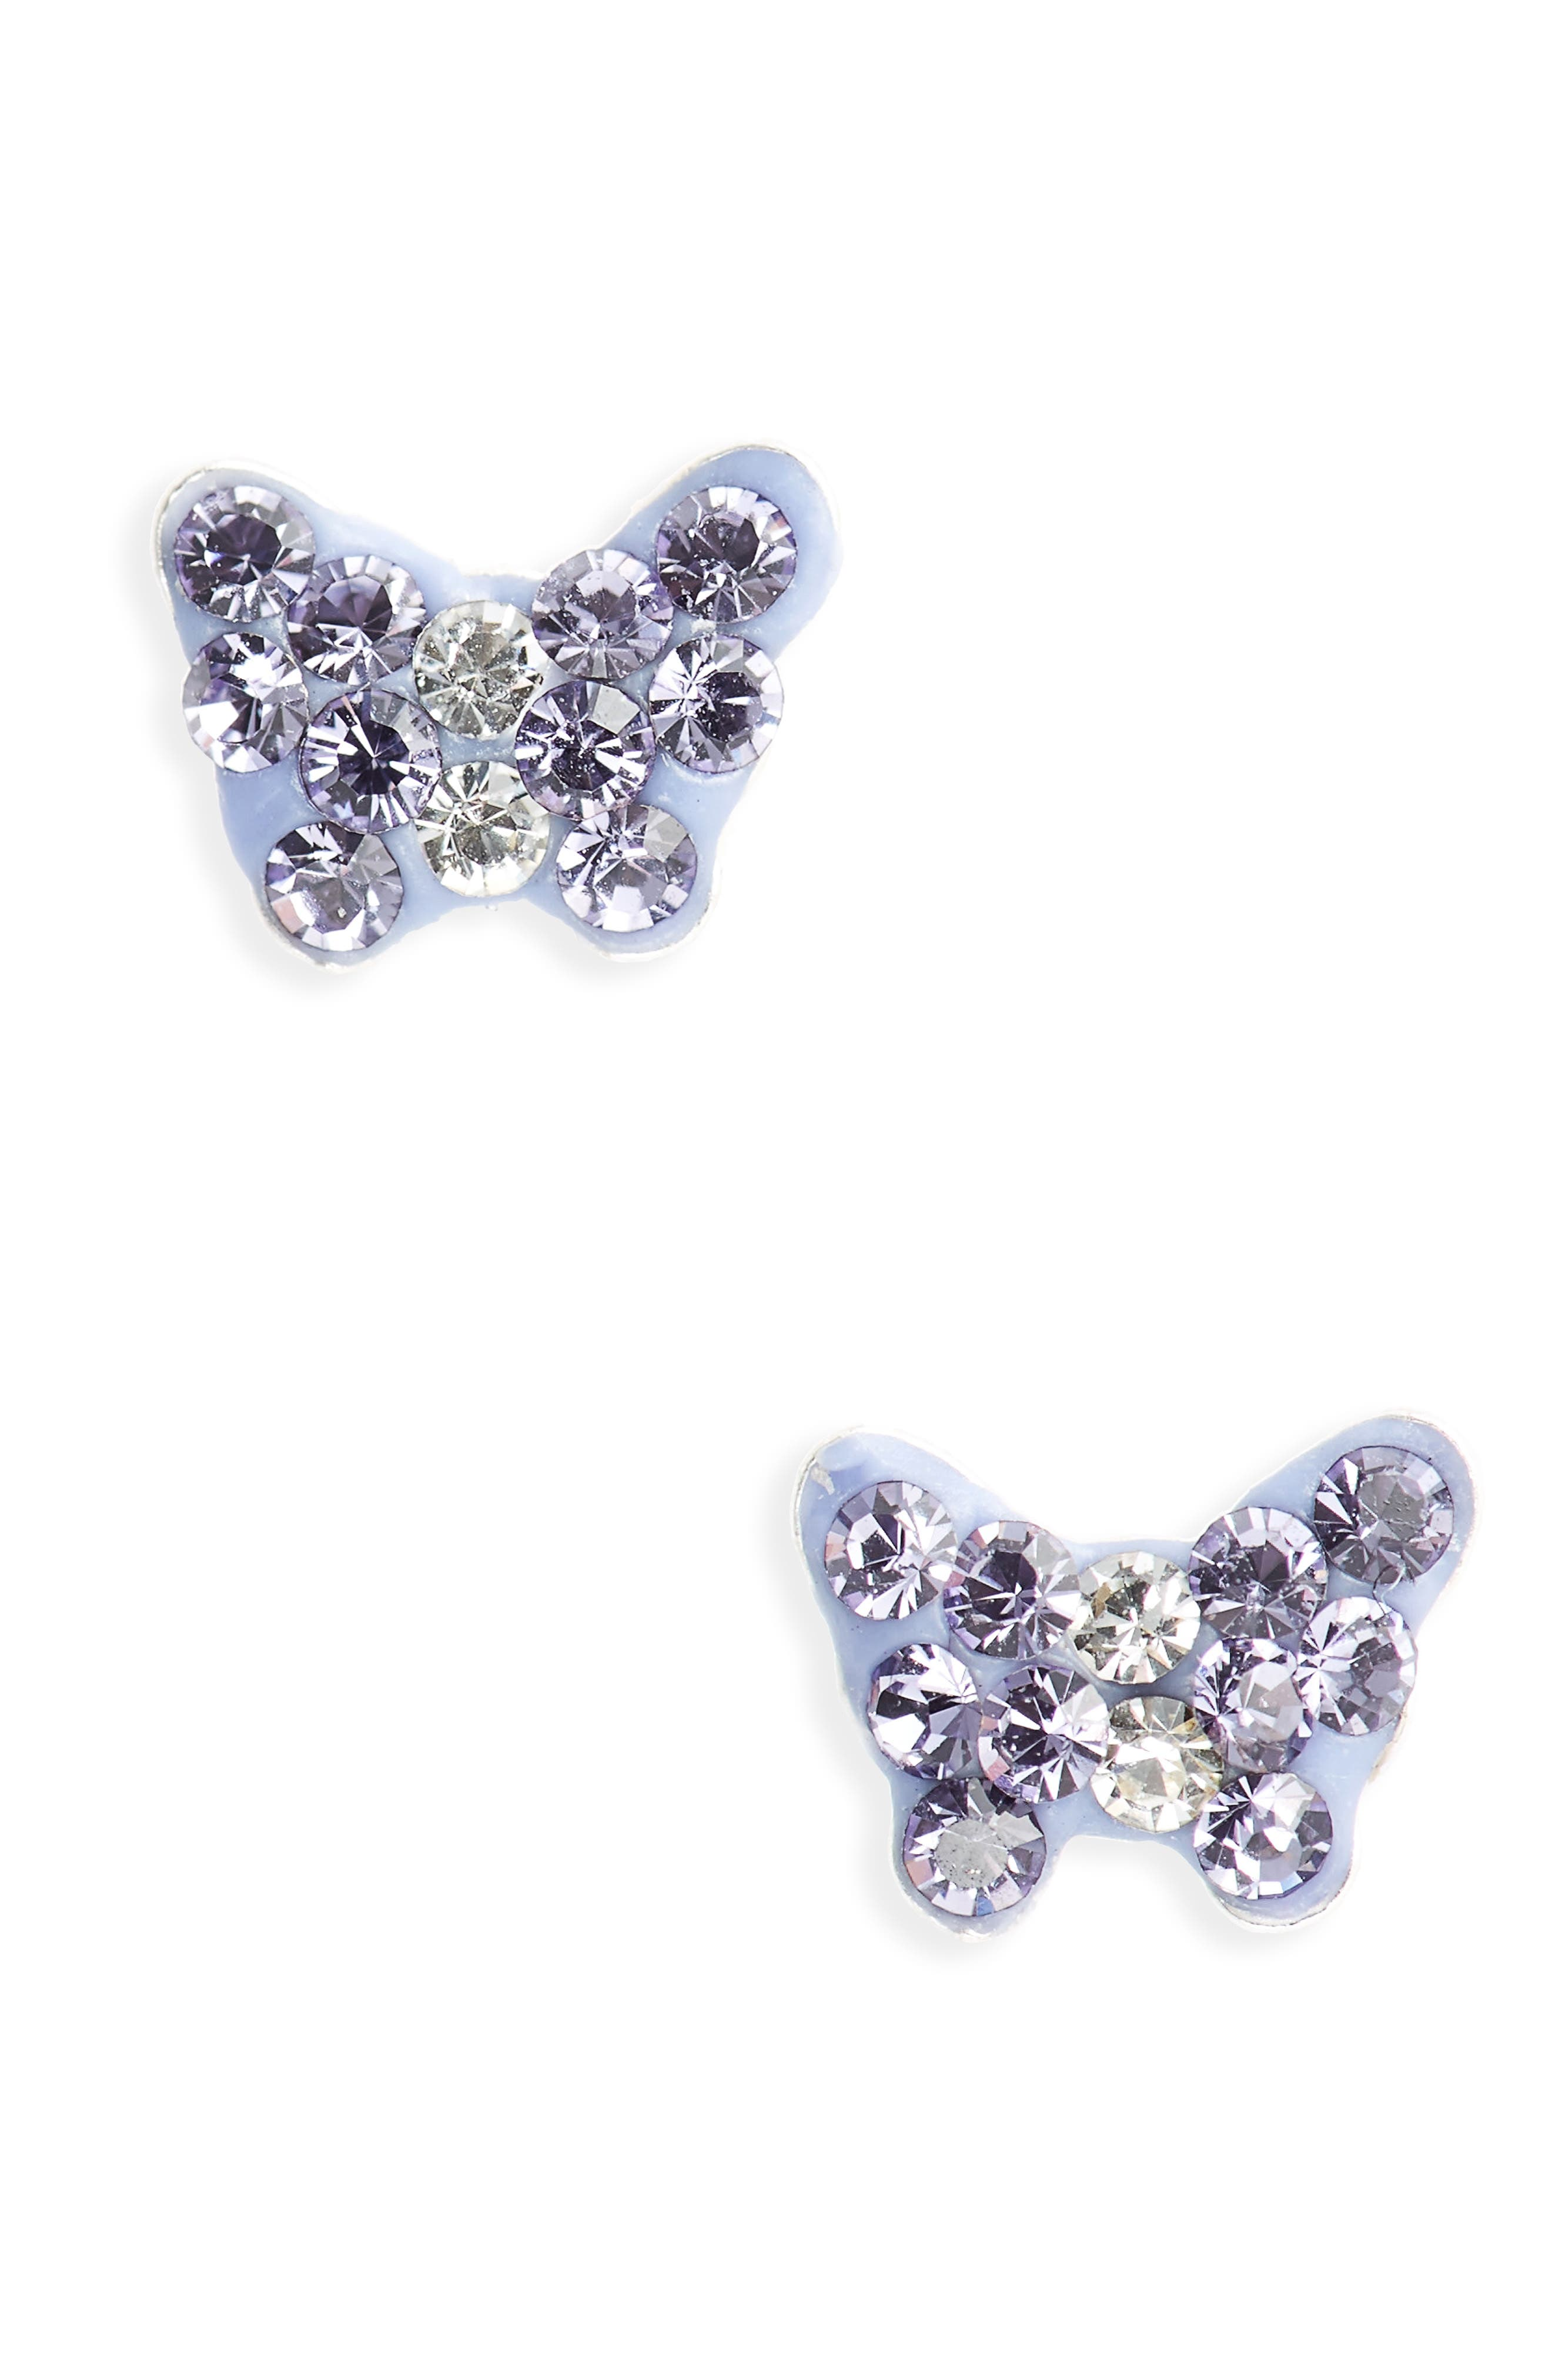 Cubic Zirconia Butterfly Earrings,                             Main thumbnail 1, color,                             500